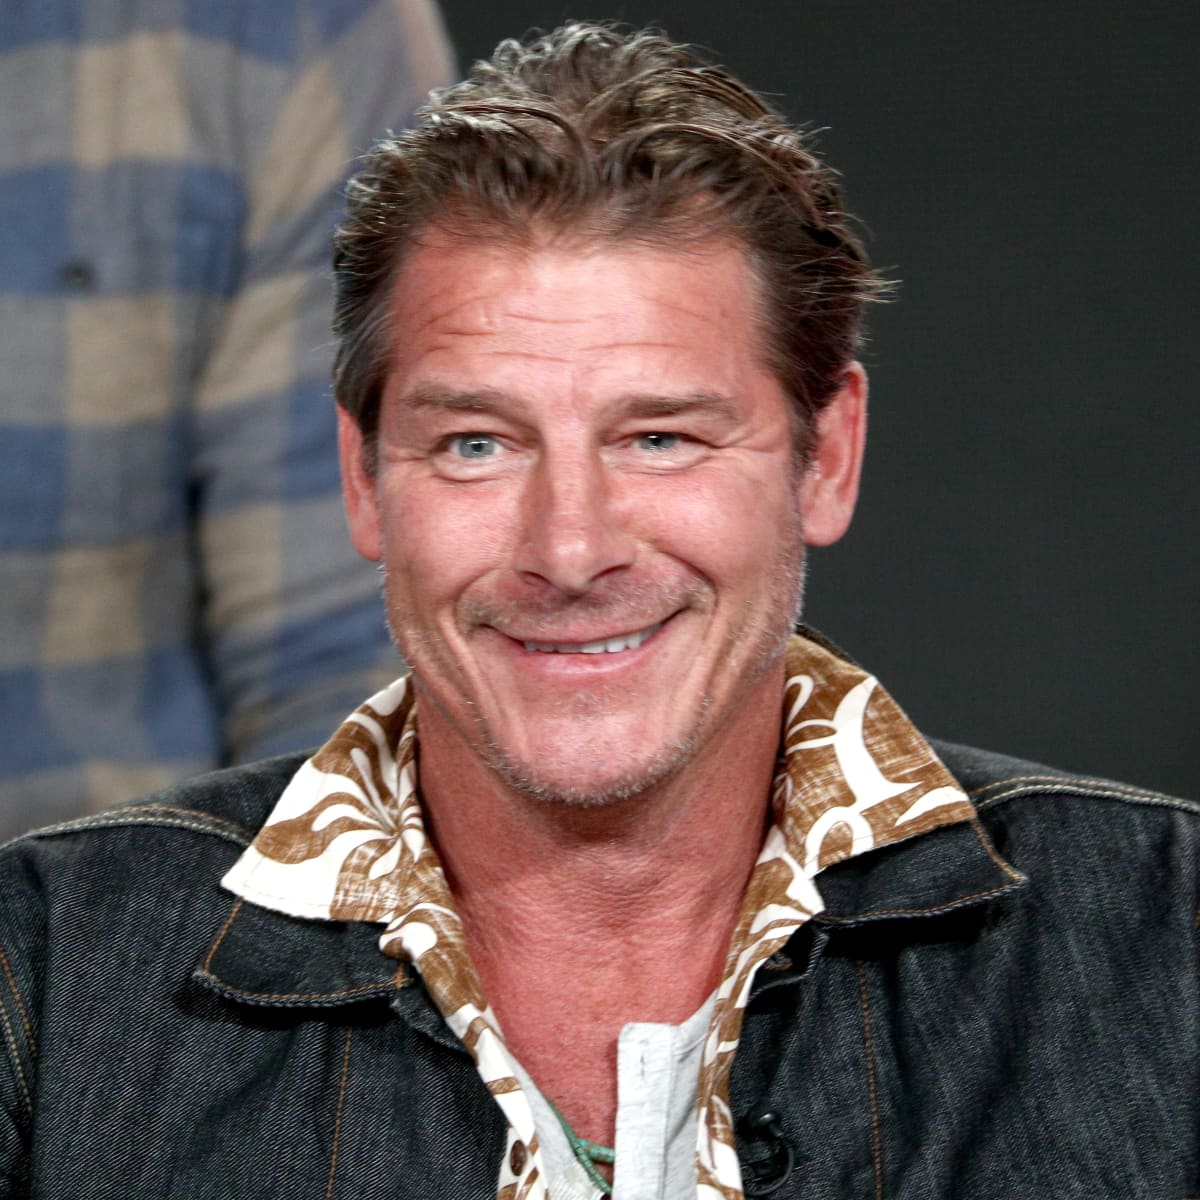 American Home Makeover extreme makeover: home edition': where is ty pennington today?